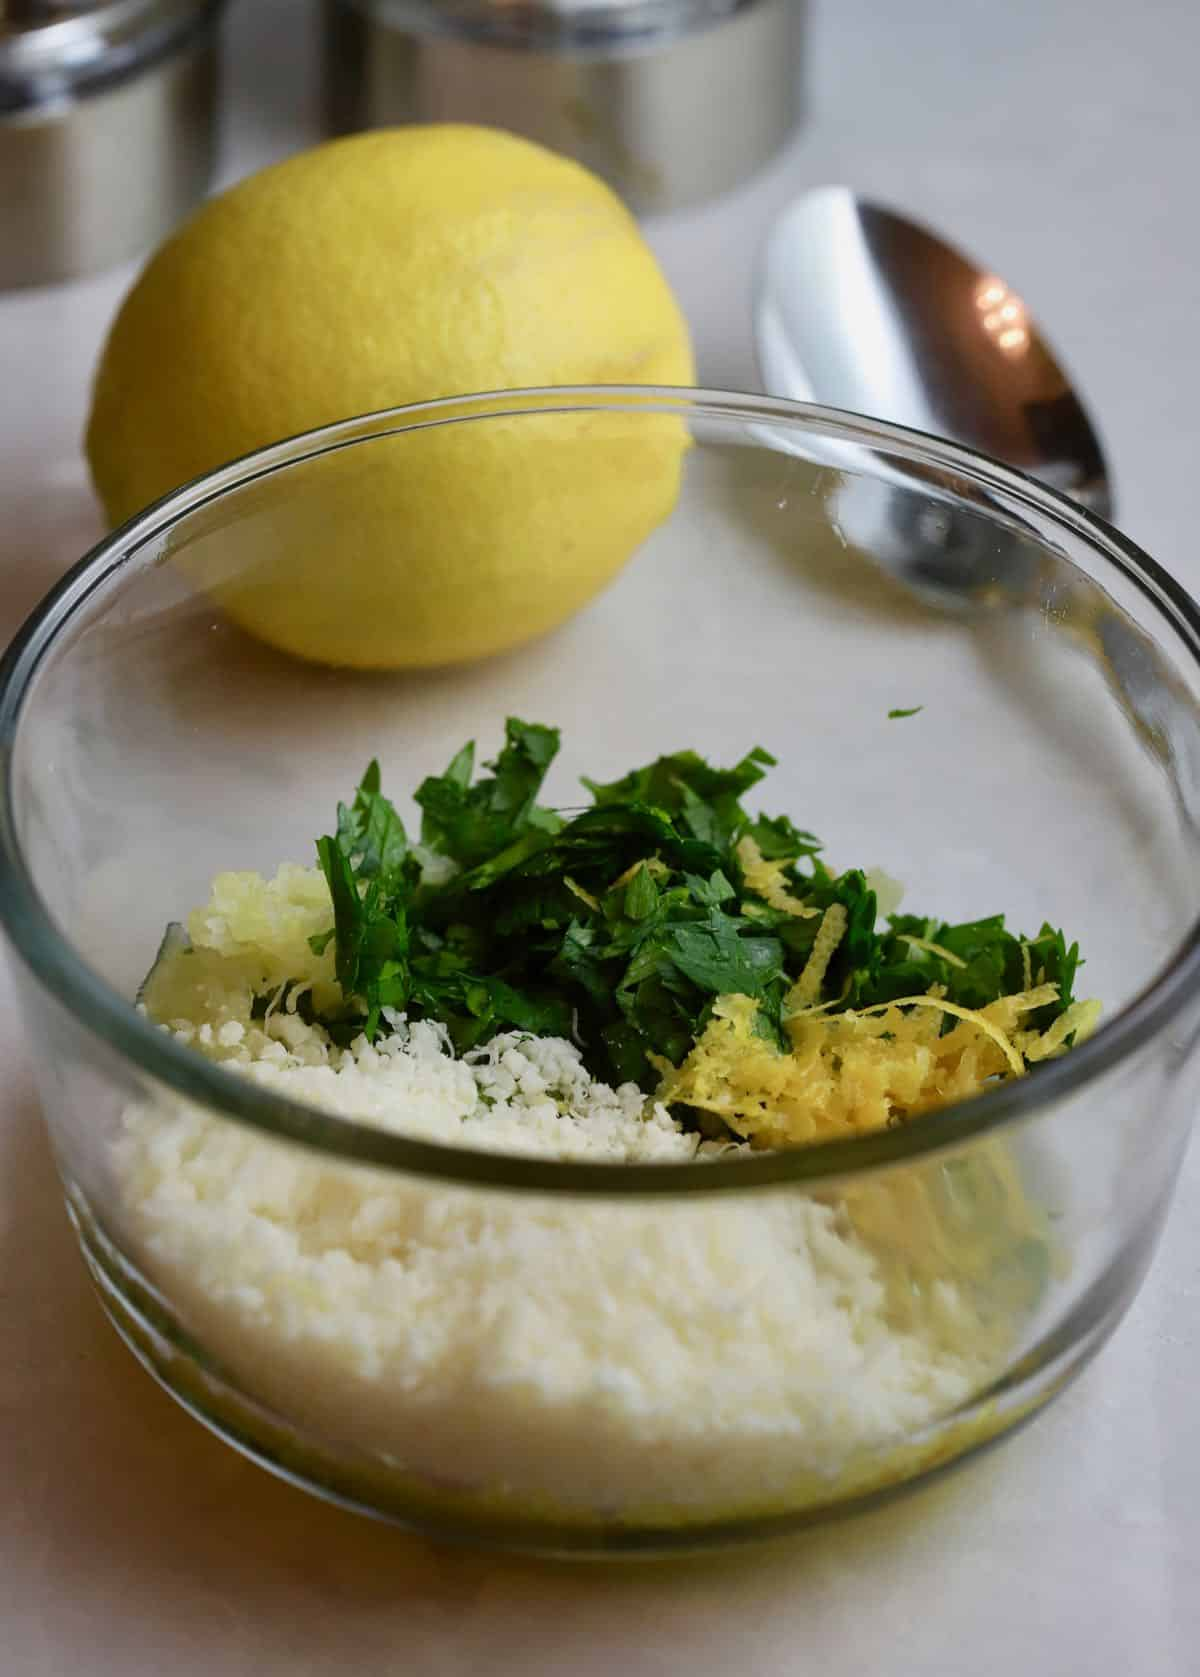 Parmesan cheese, lemon zest and parsley in a small bowl.